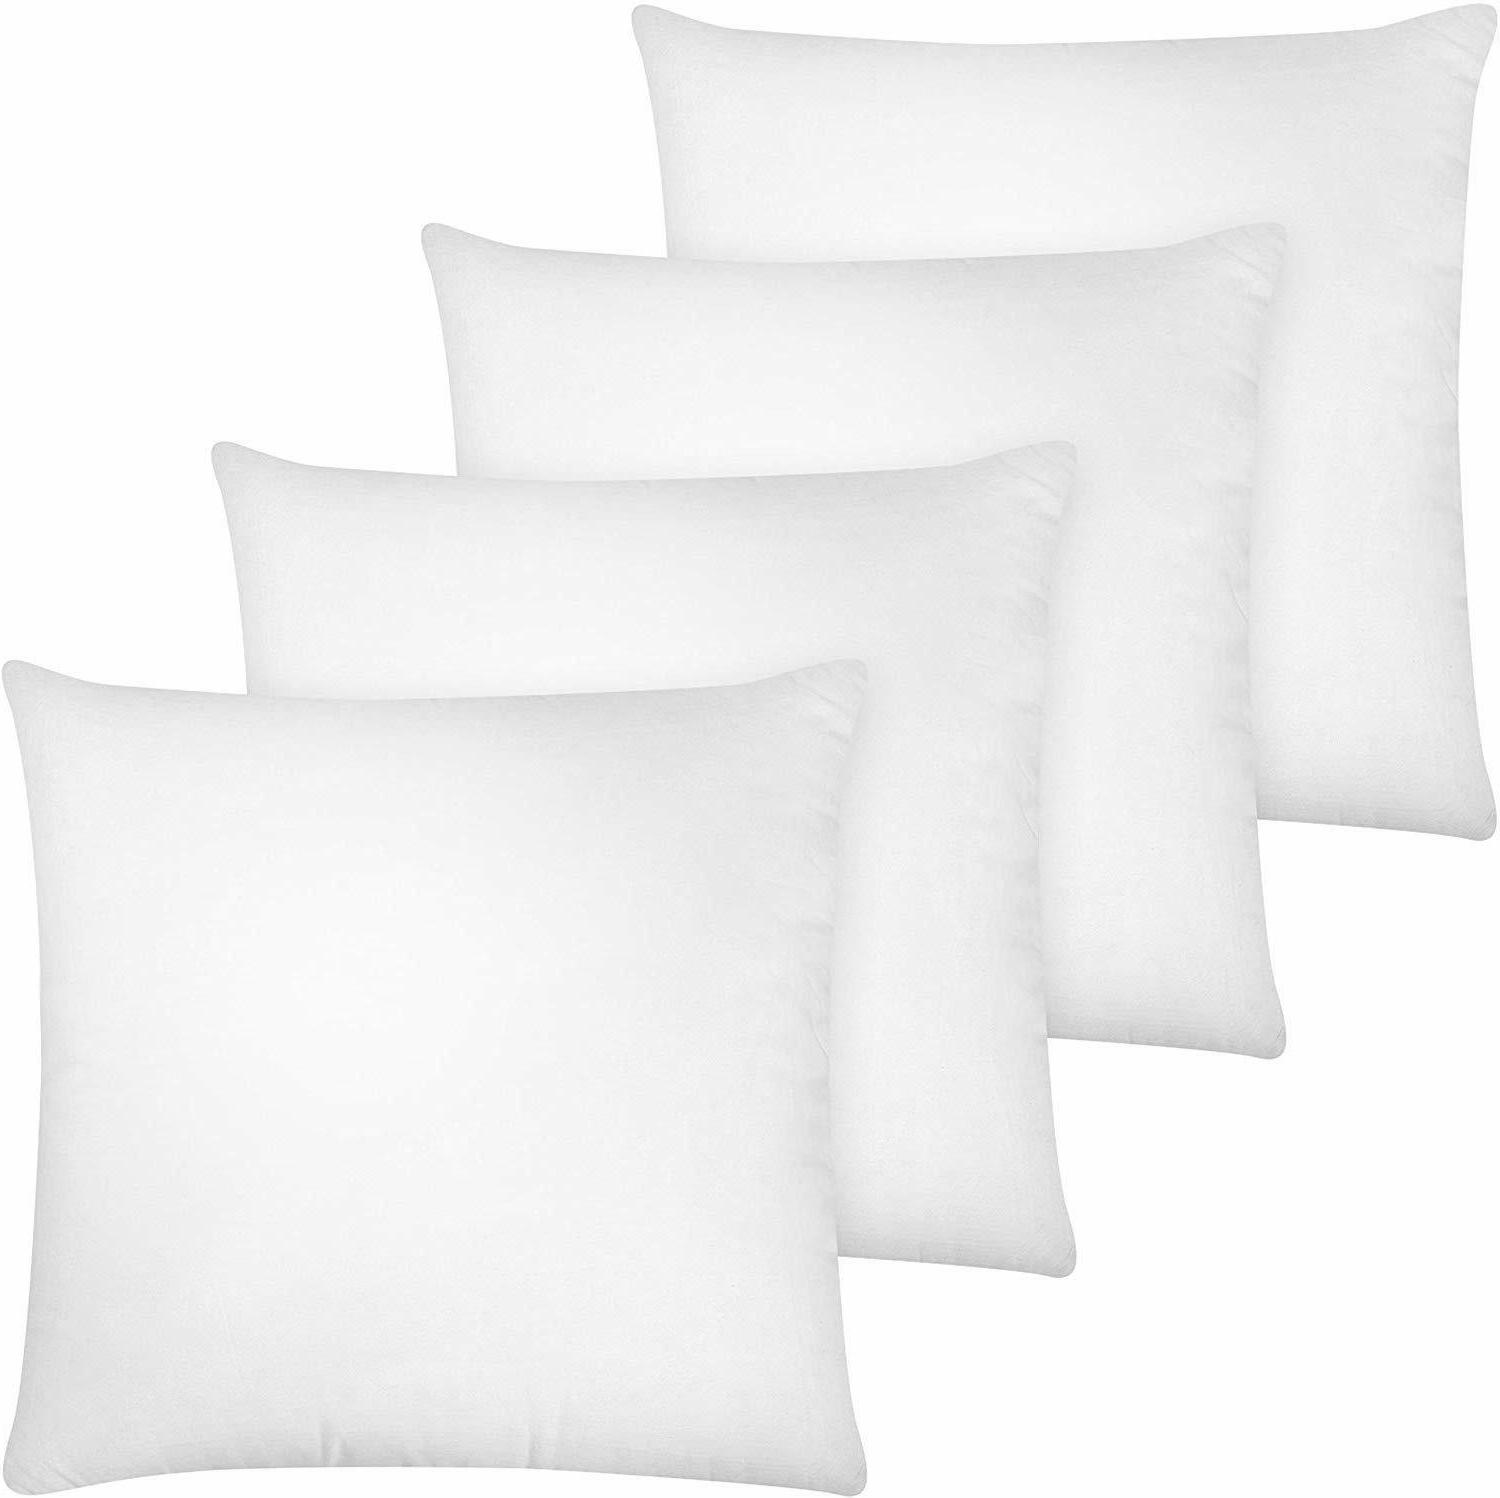 Pack Pillows Couch Pillows